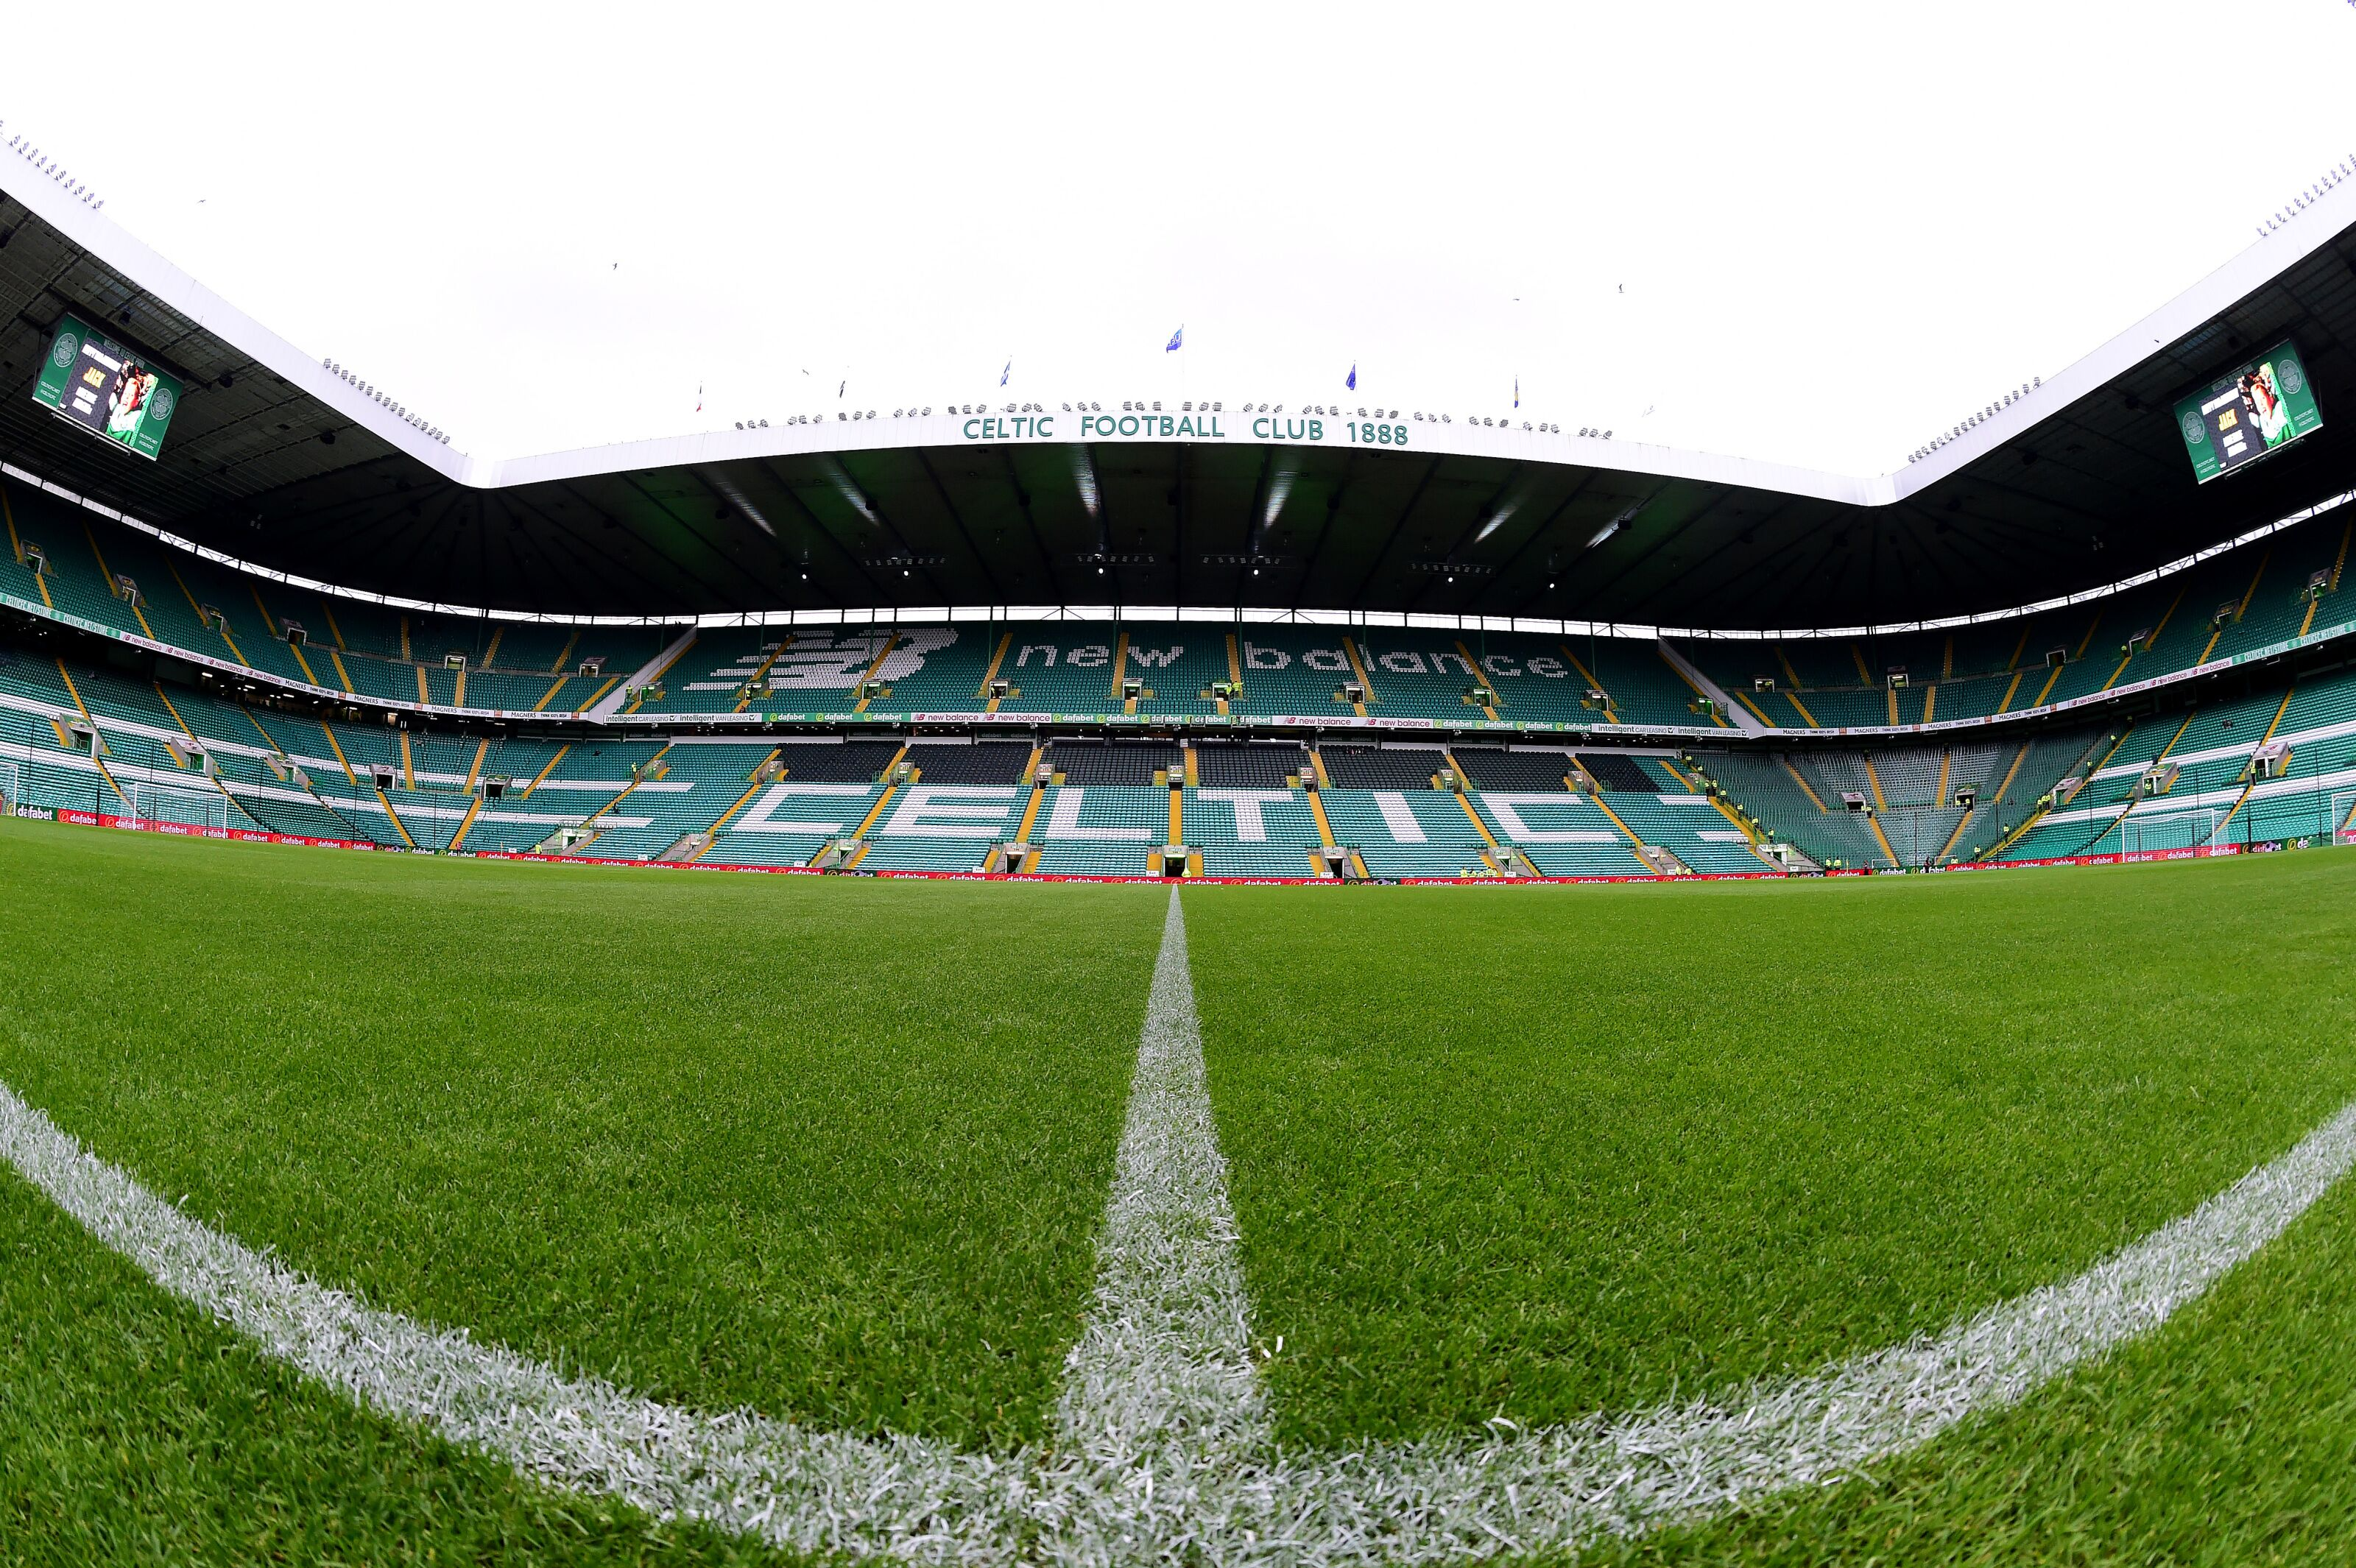 AIK v Celtic FC: How to Watch, Live Stream, TV Channel